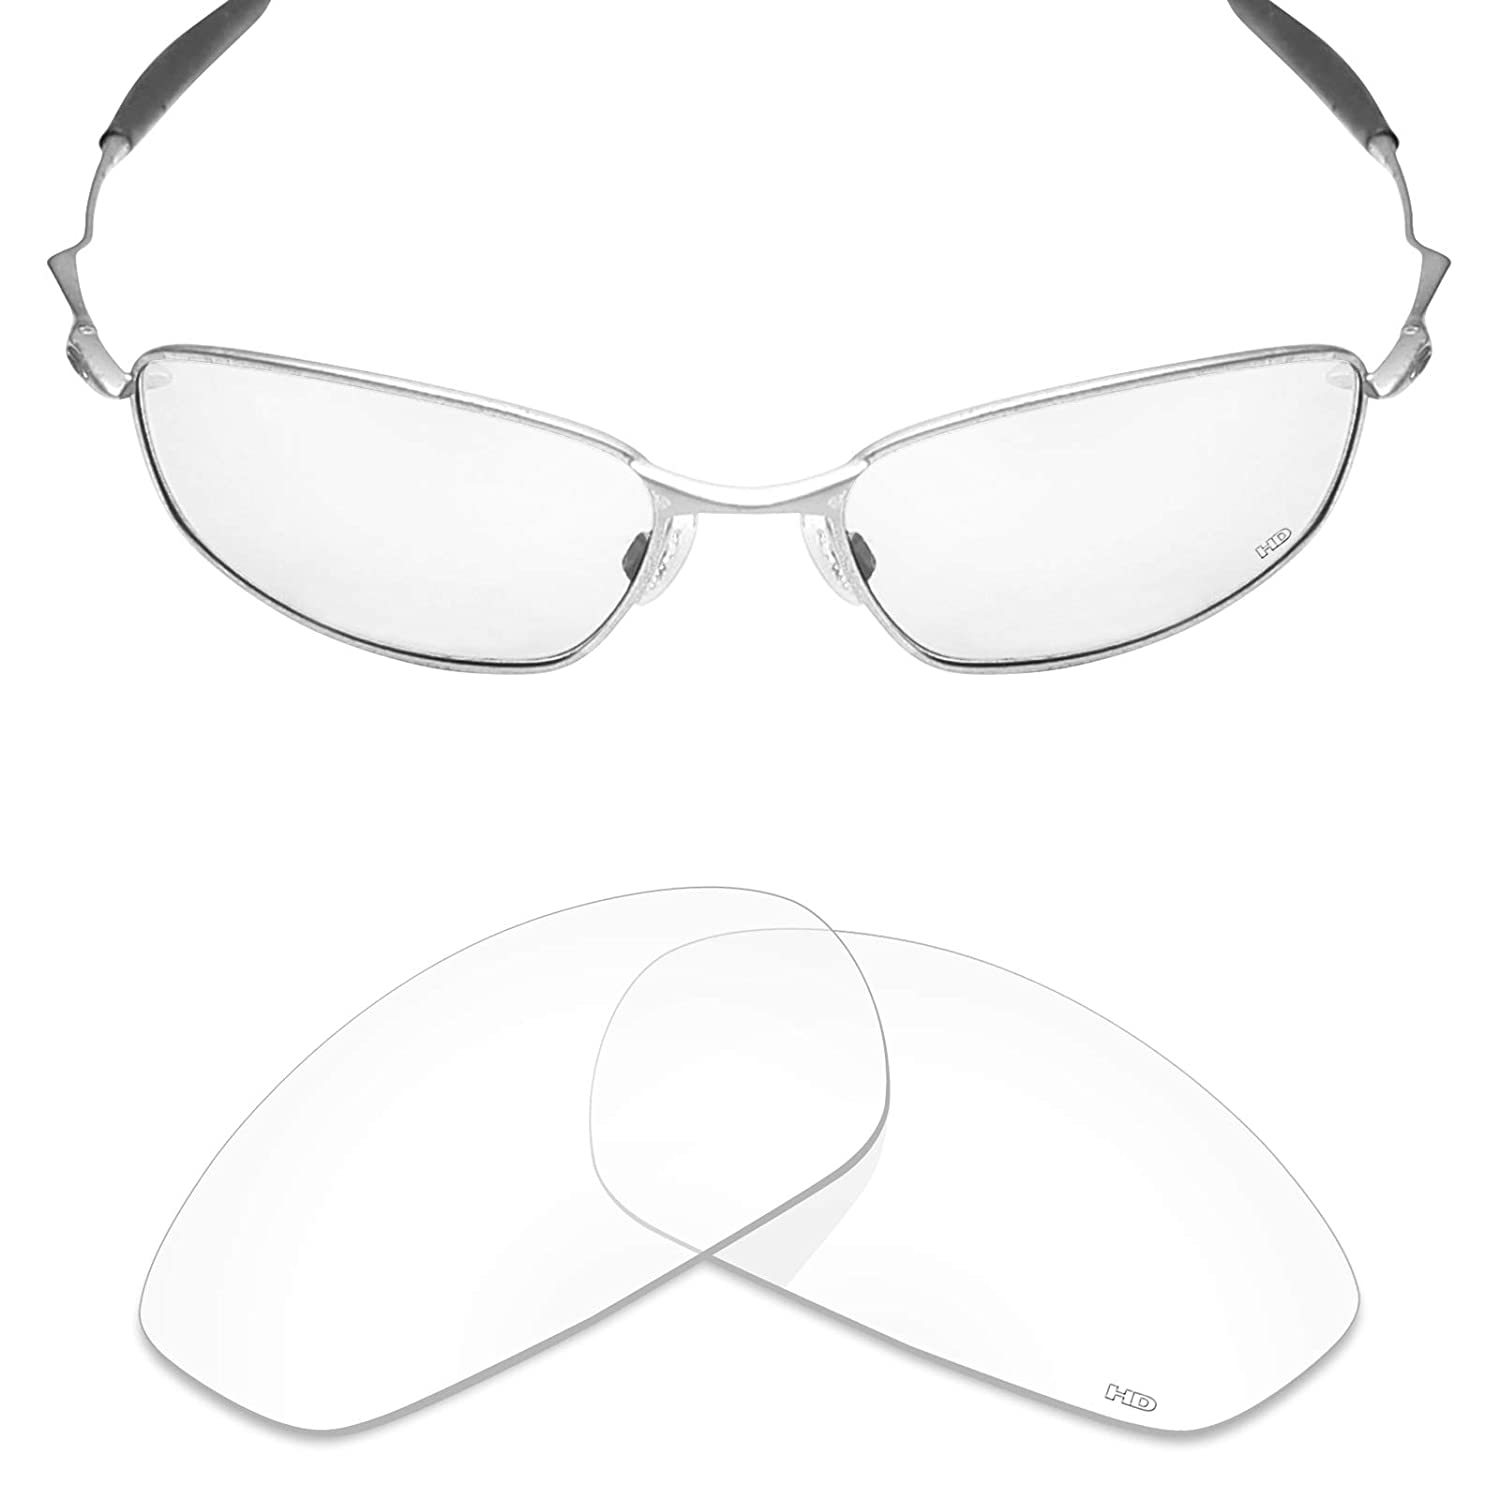 2ae2b400b23 Amazon.com  Mryok+ Polarized Replacement Lenses for Oakley Whisker - HD  Clear  Clothing